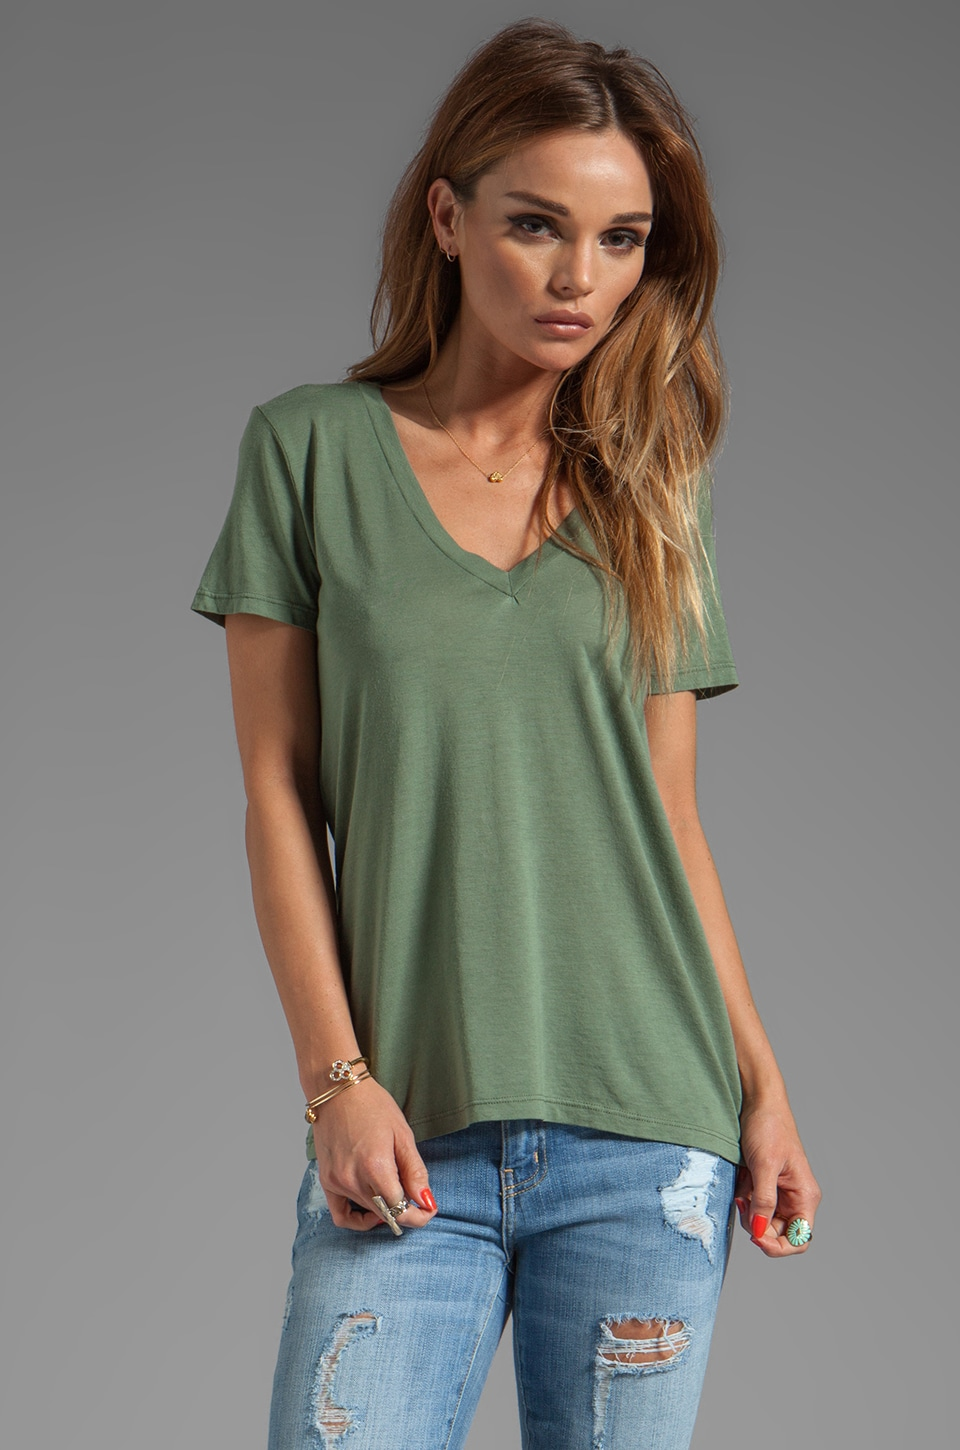 Splendid Light Jersey V-Neck Short Sleeve Tee in Camo